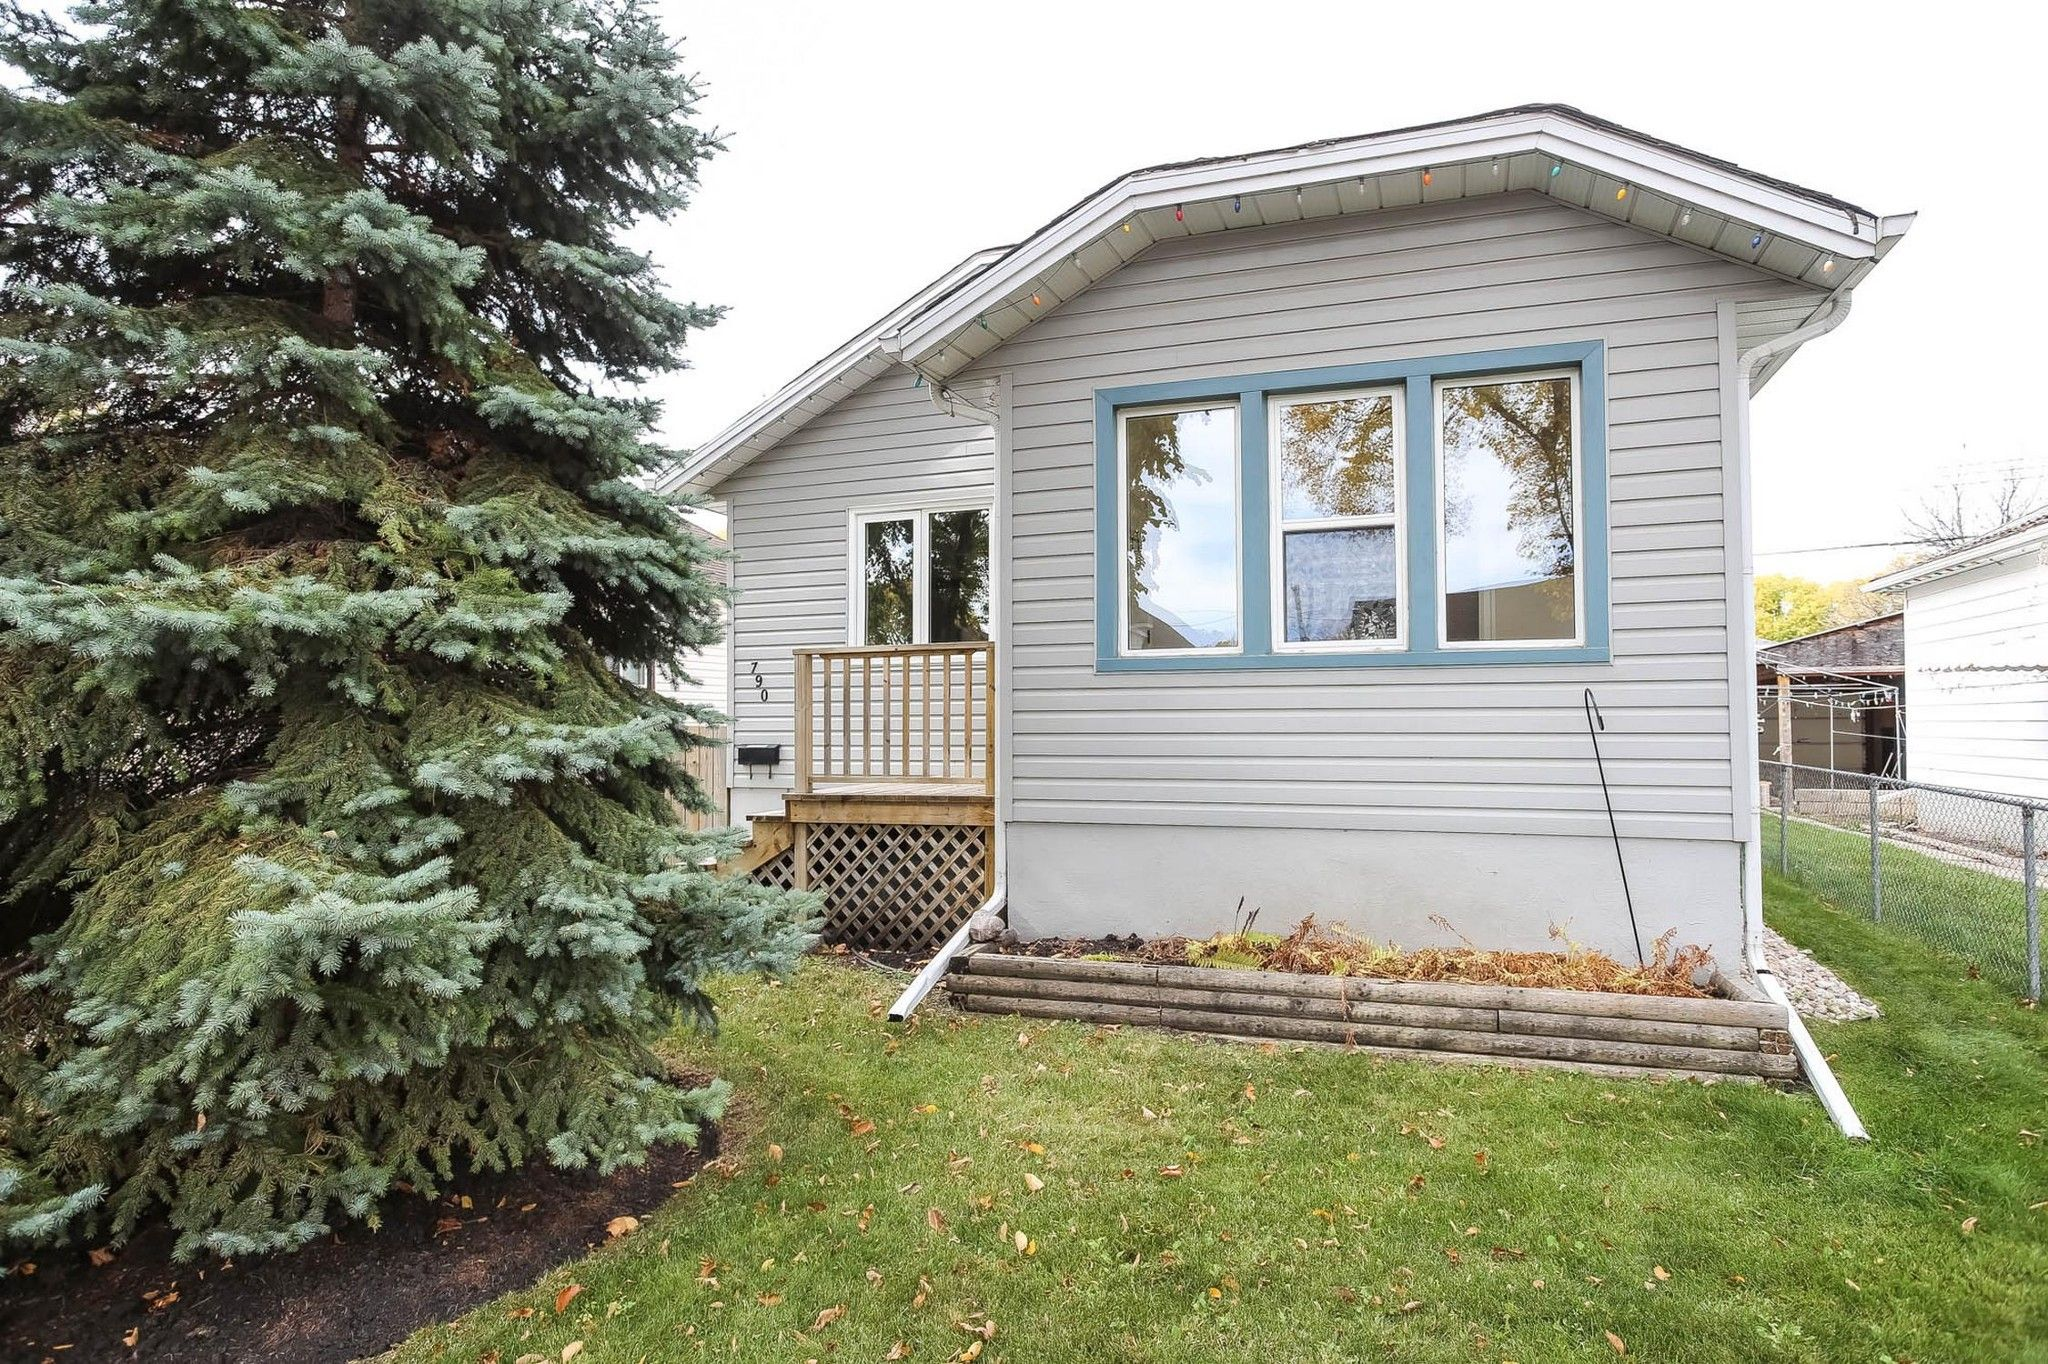 Photo 3: Photos: 790 Spruce Street in Winnipeg: West End Single Family Detached for sale (5C)  : MLS®# 202024710